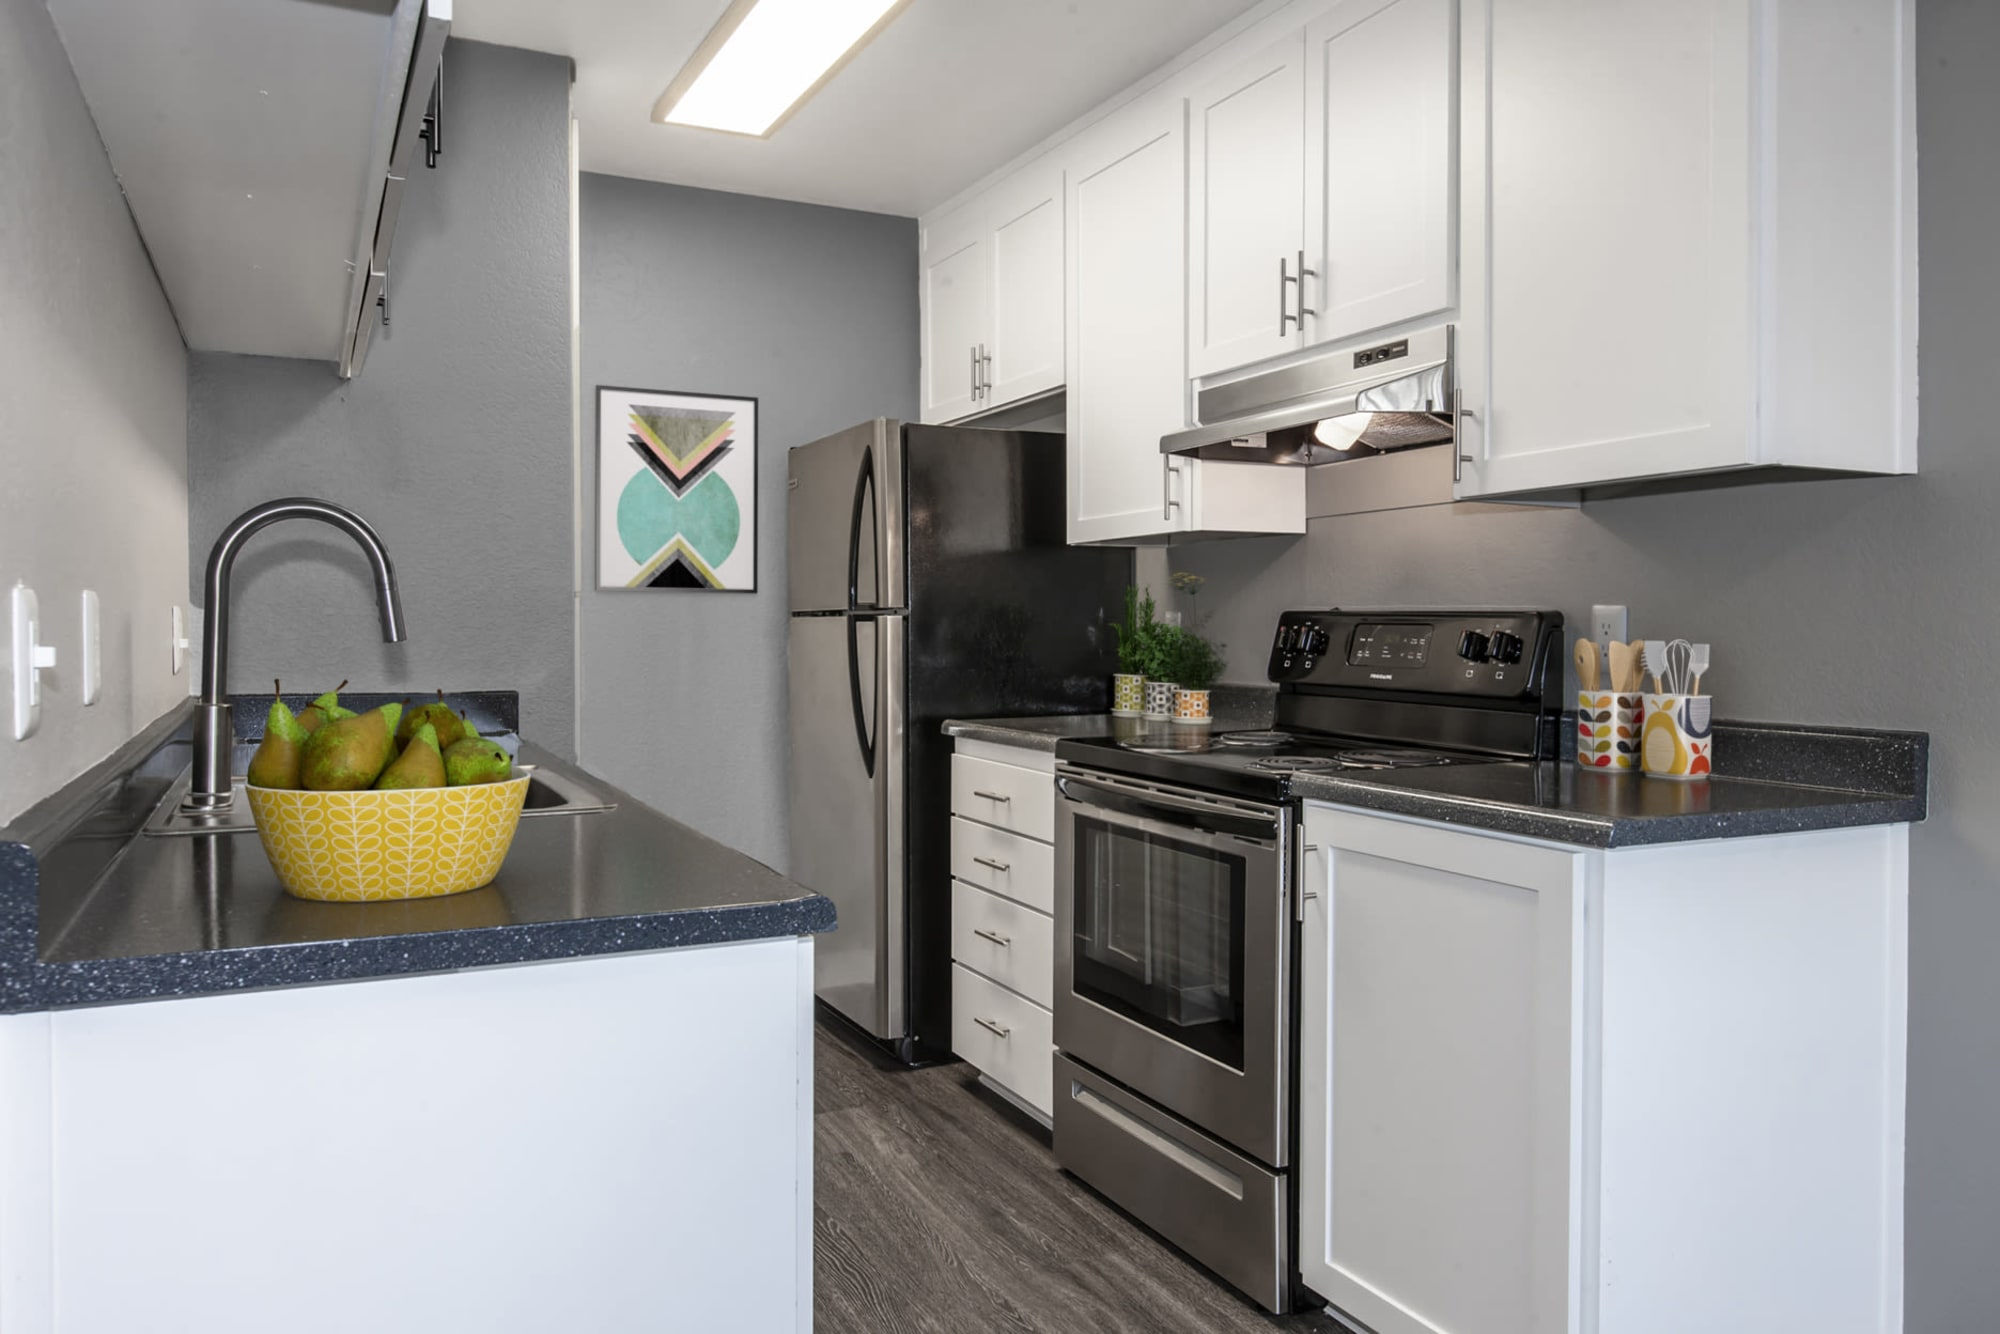 Stylish gray and white kitchen at Avery Park Apartments in Fairfield, California